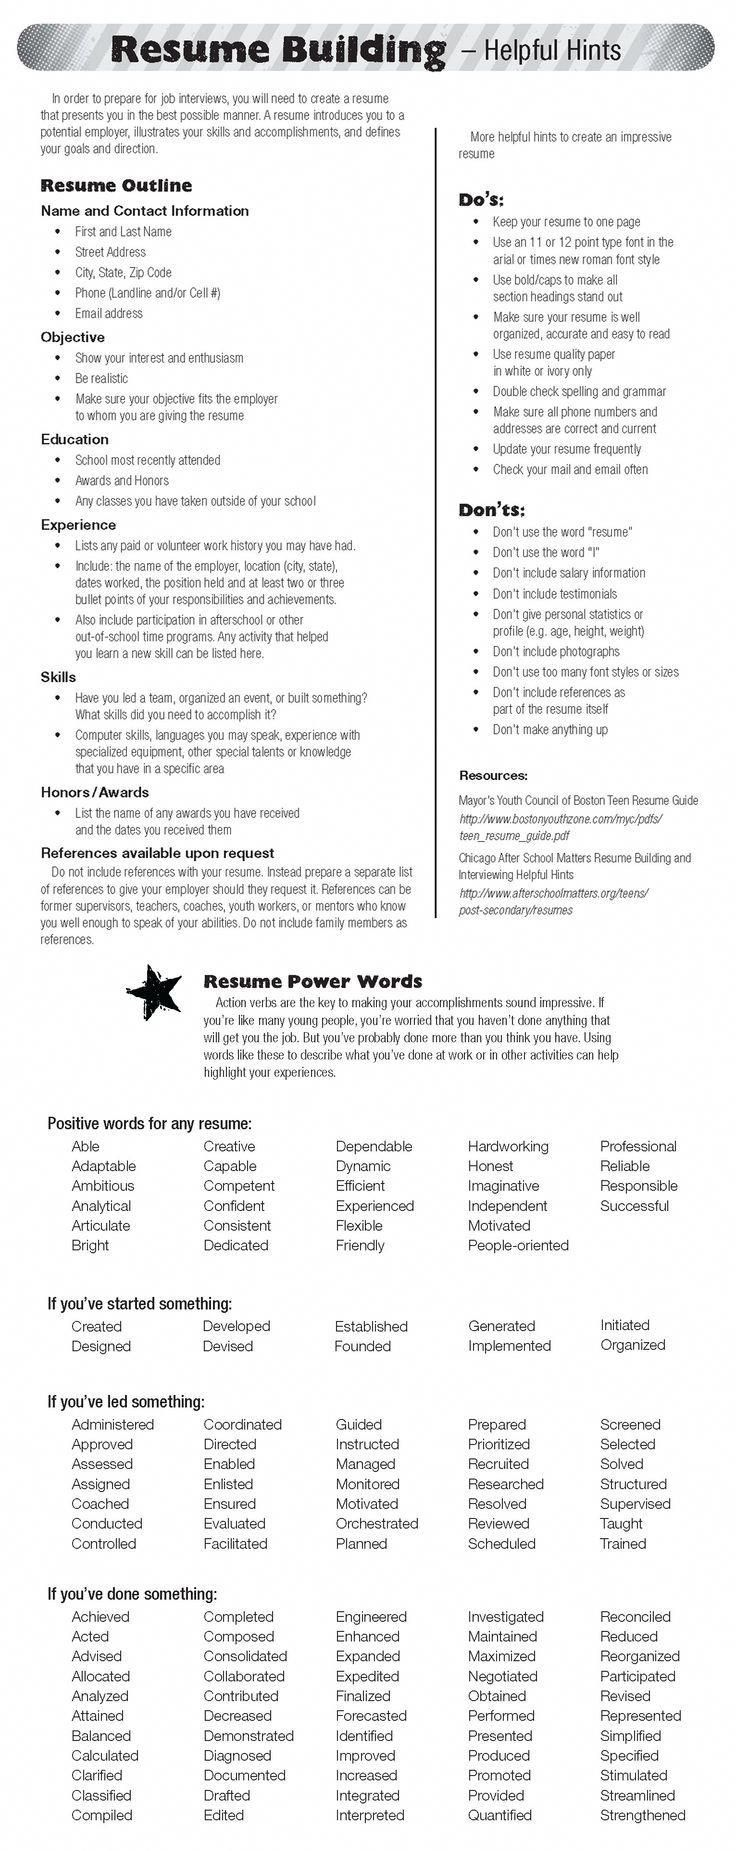 Accredited resume writing services